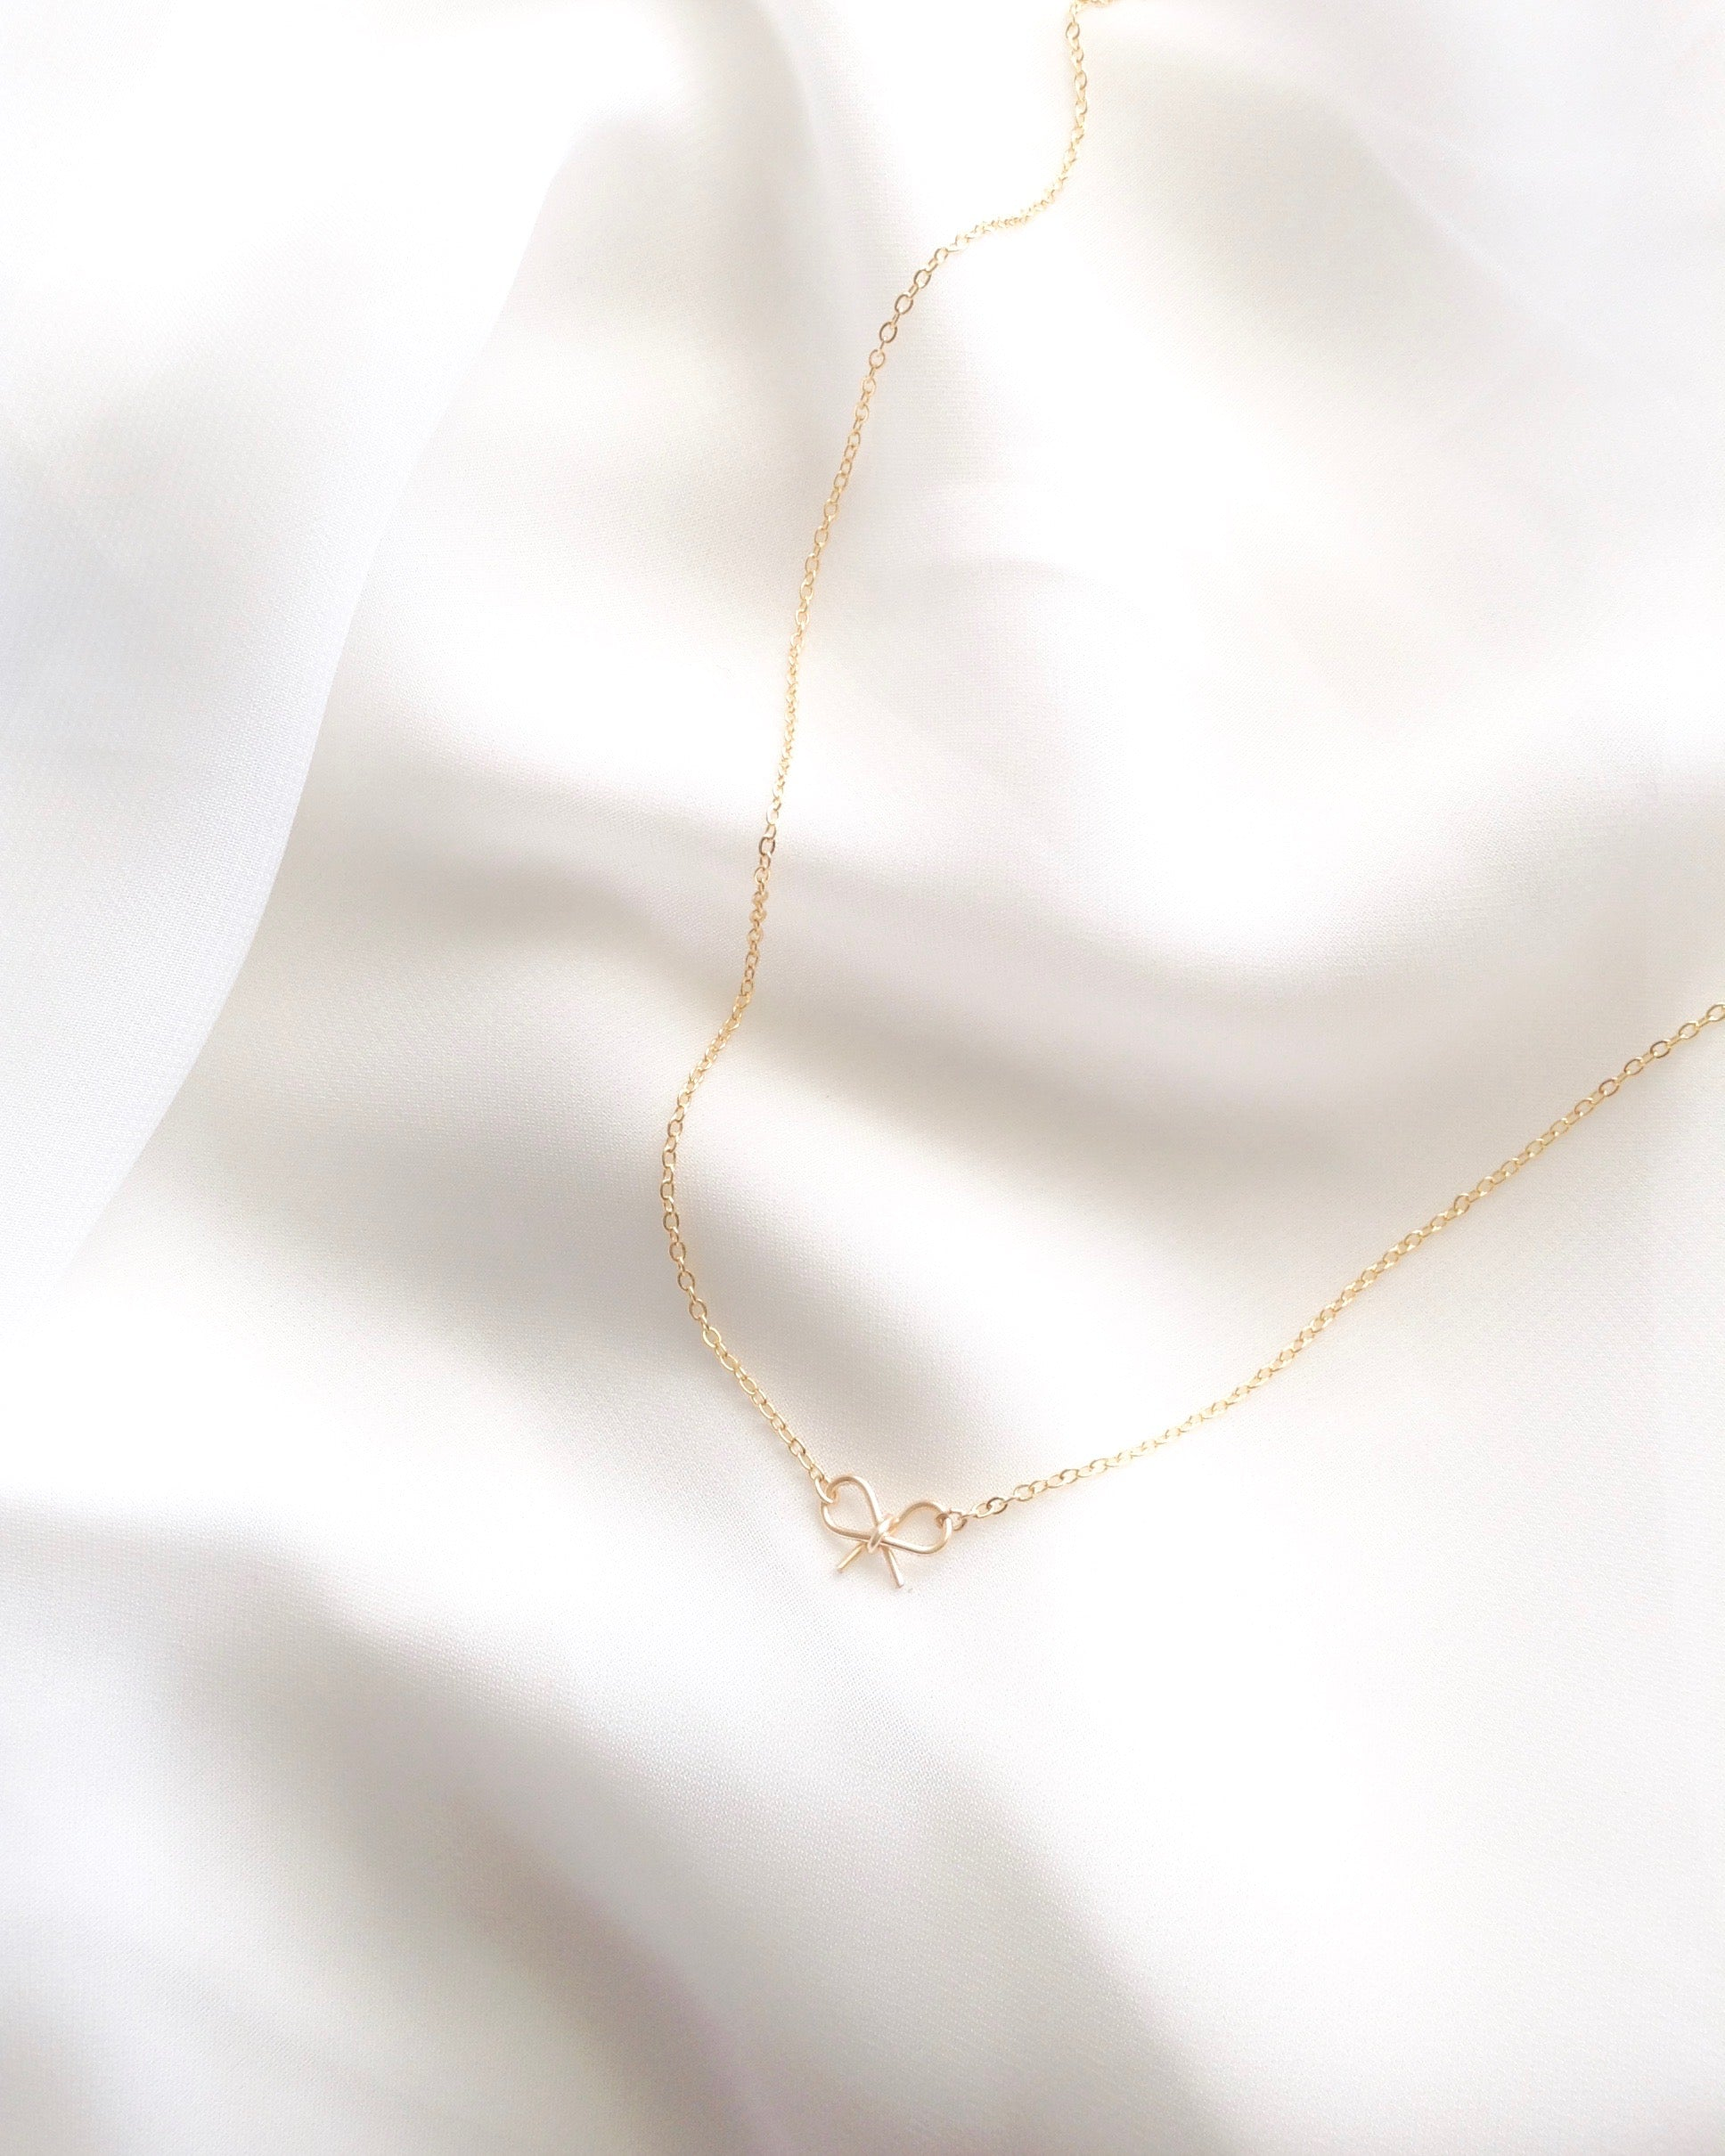 Simple Bow Necklace in Gold Filled or Sterling Silver | IB Jewelry